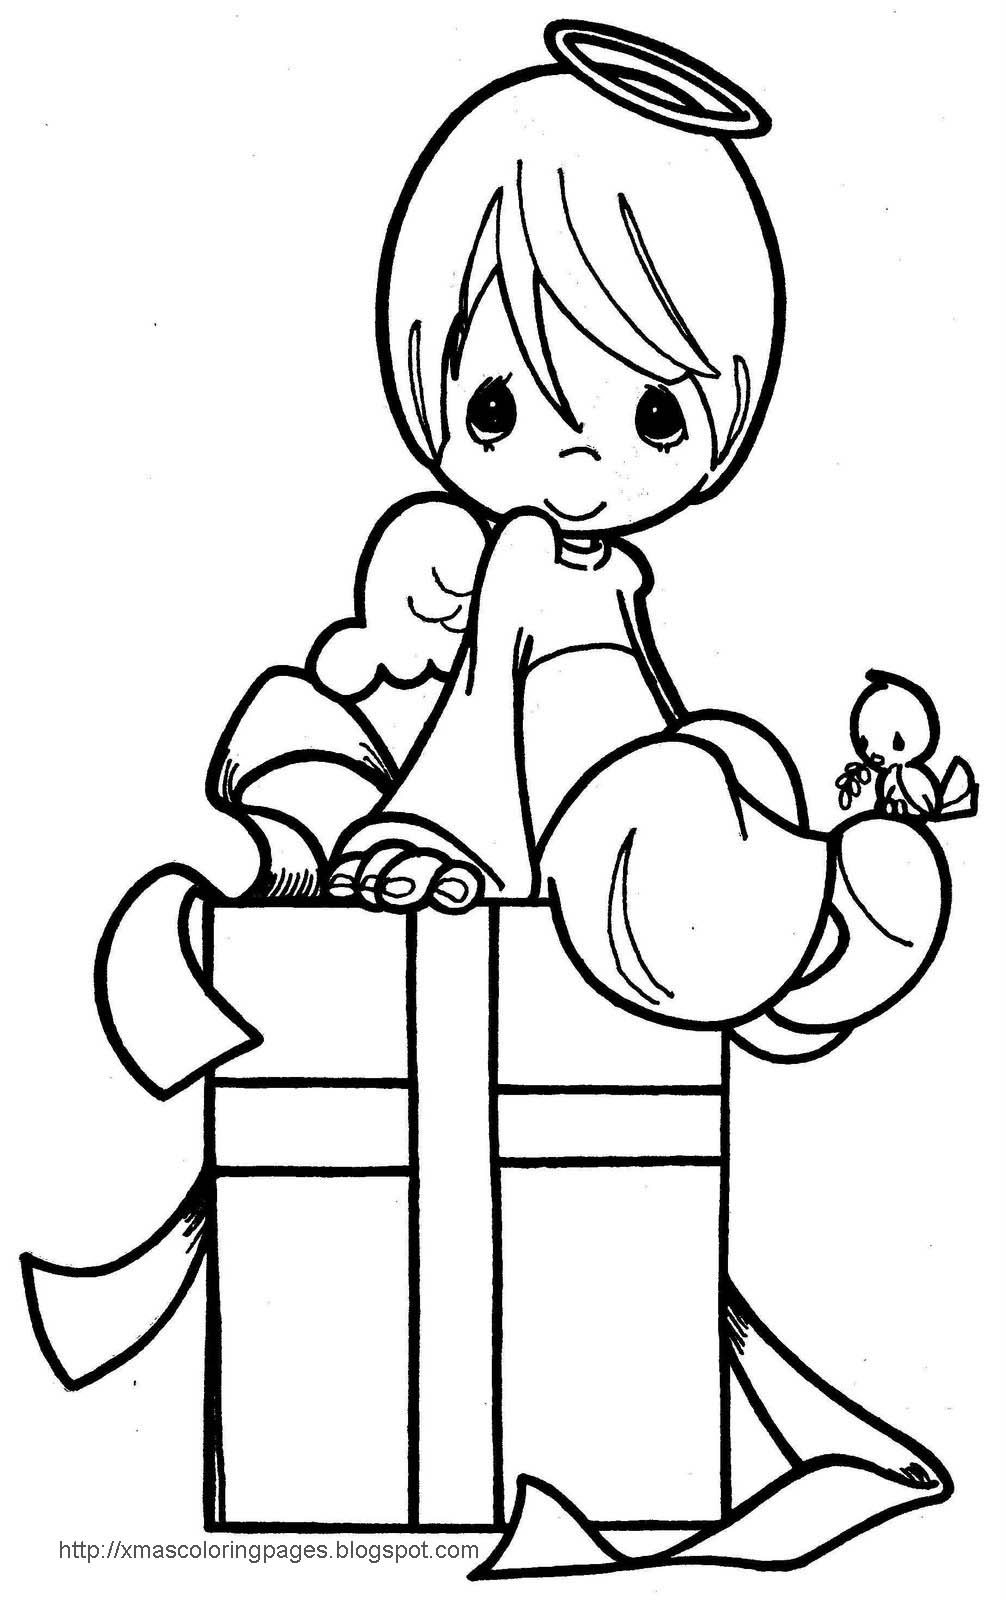 angel colouring angel coloring pages to download and print for free colouring angel